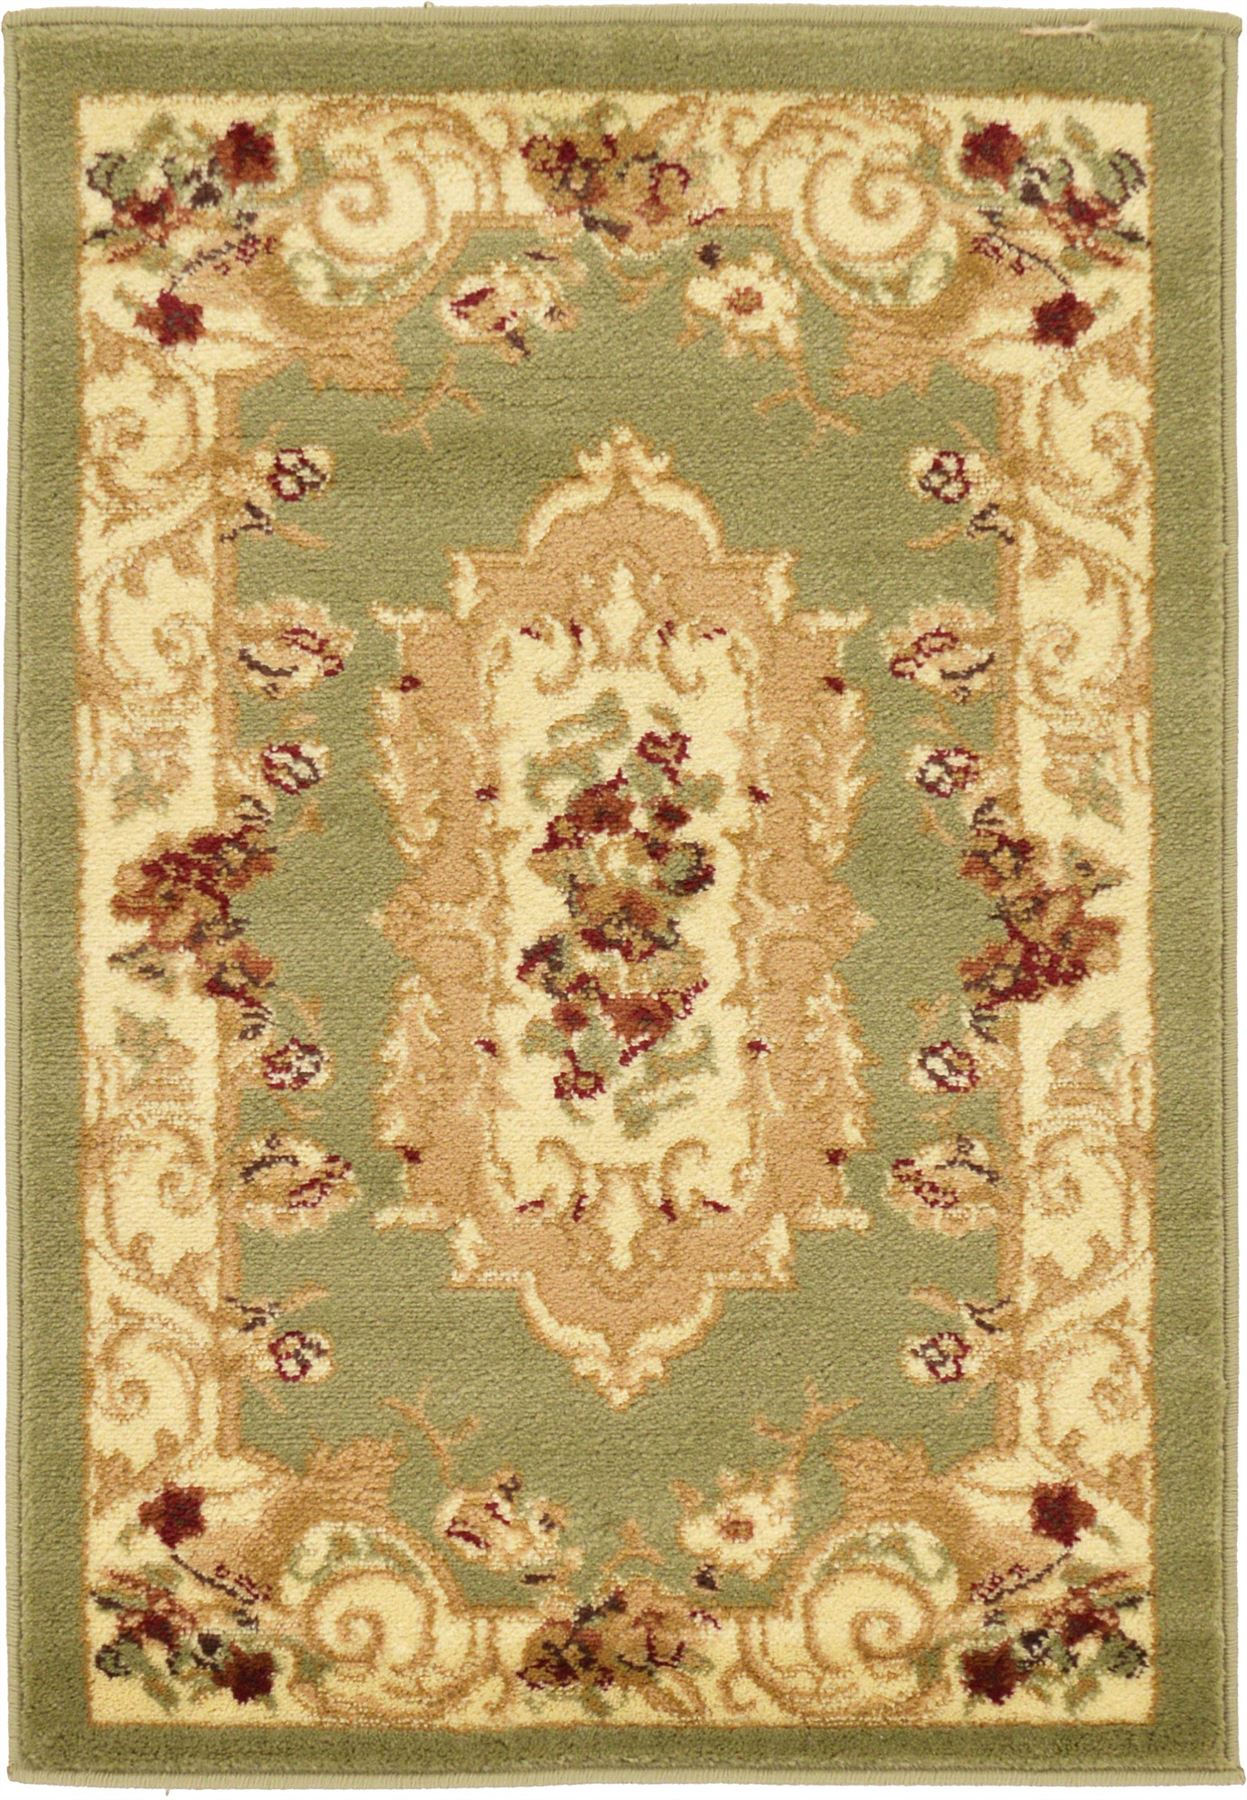 Oriental-Large-Area-Rug-Square-Traditional-Country-Round-Carpet-Medallion-Small thumbnail 31